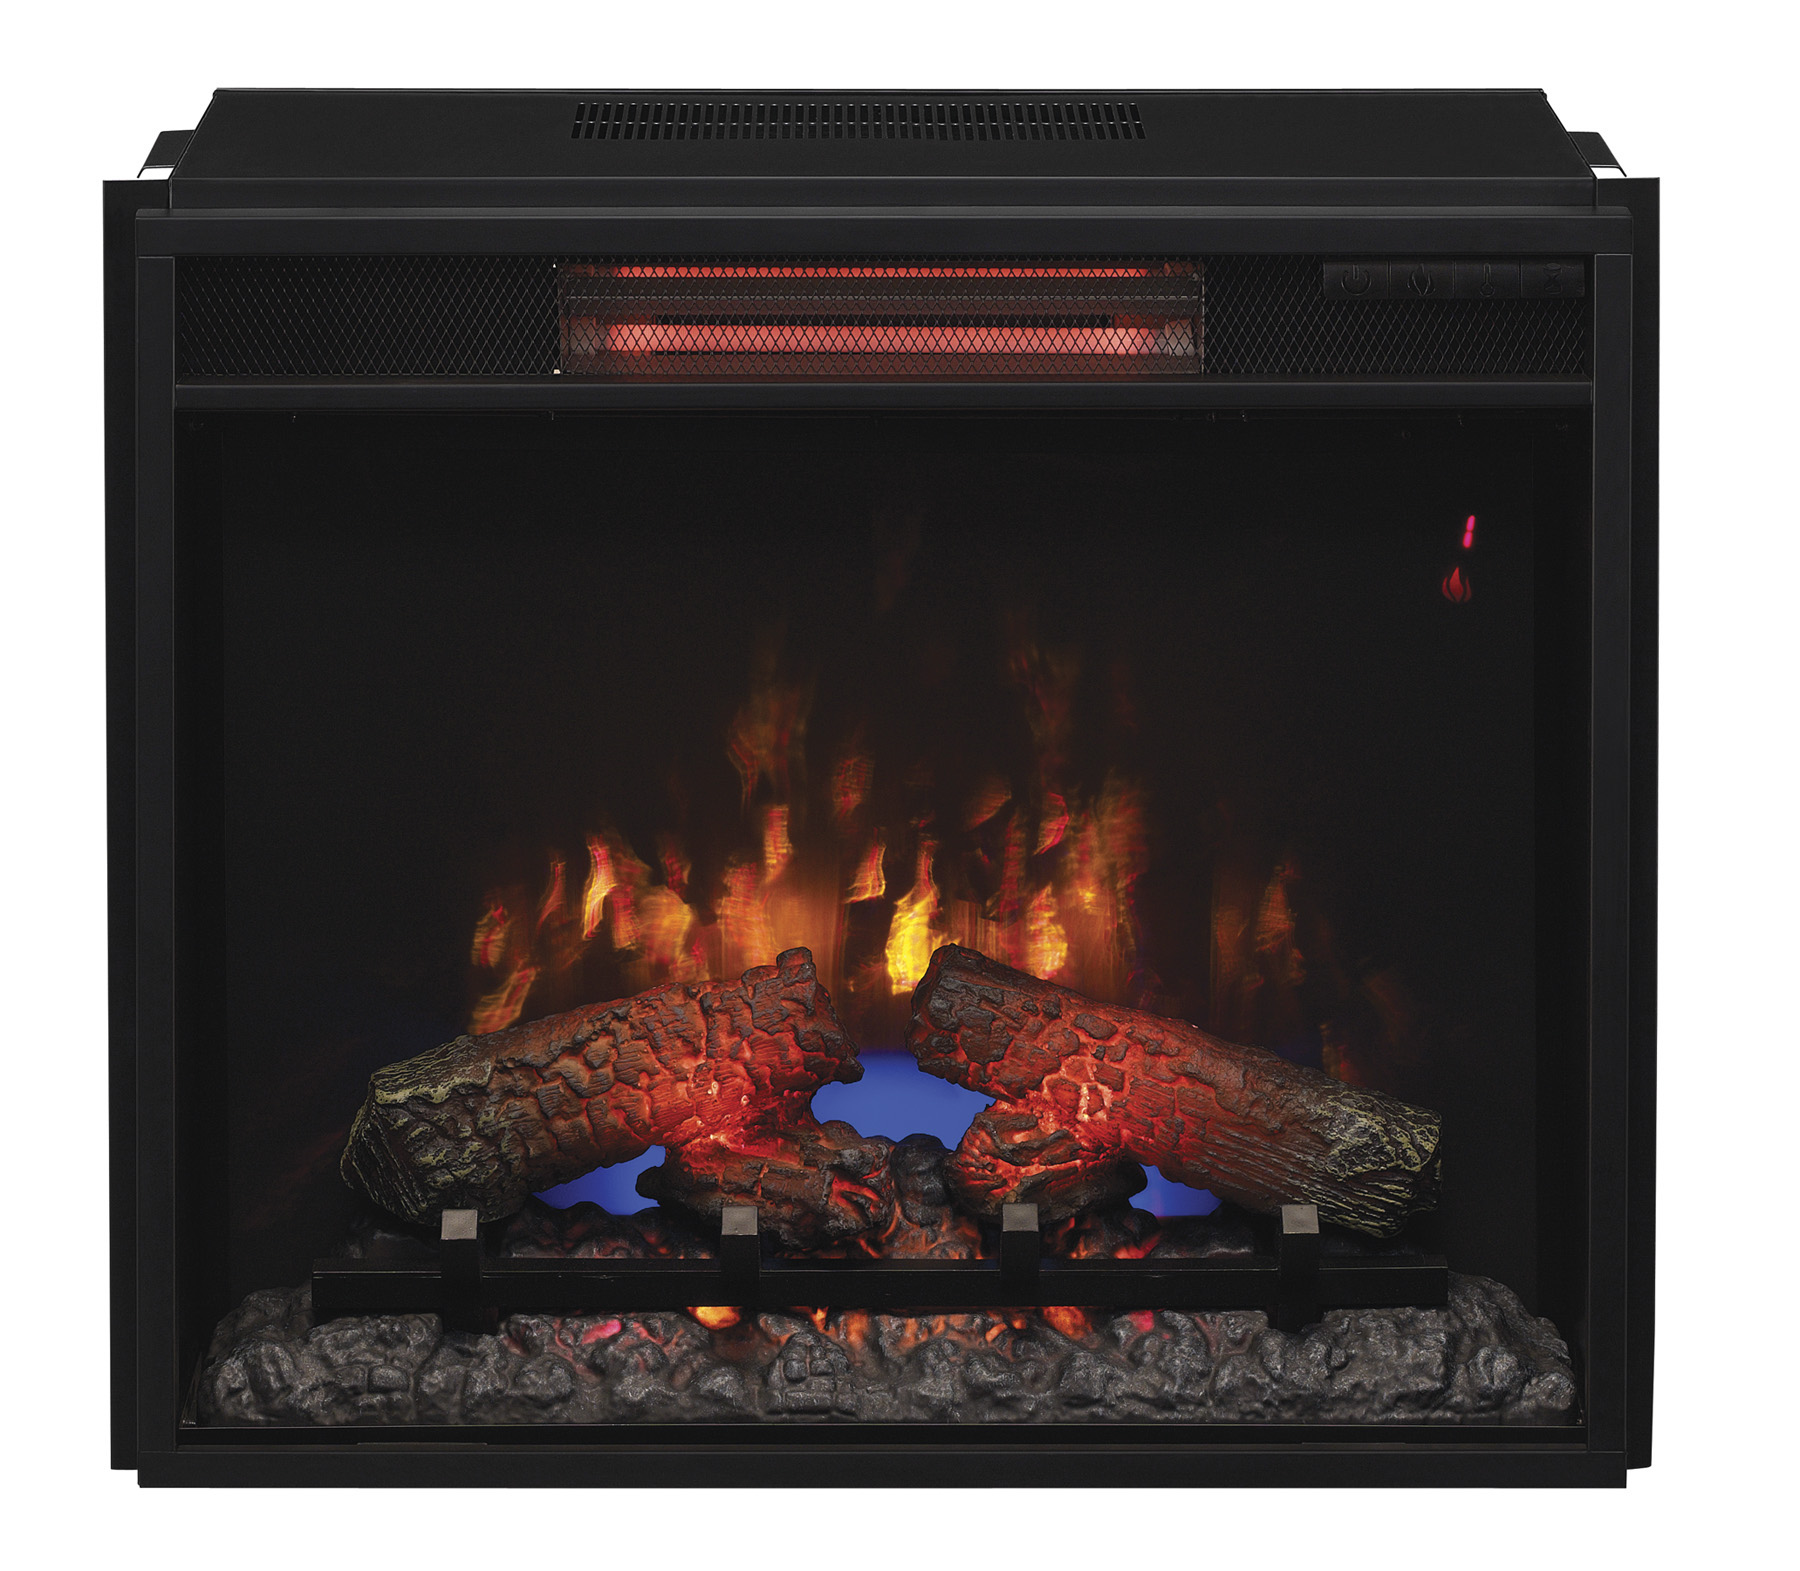 Classic Flame 23 23ii310gra Infrared Electric Fireplace Insert Electric Fireplaces